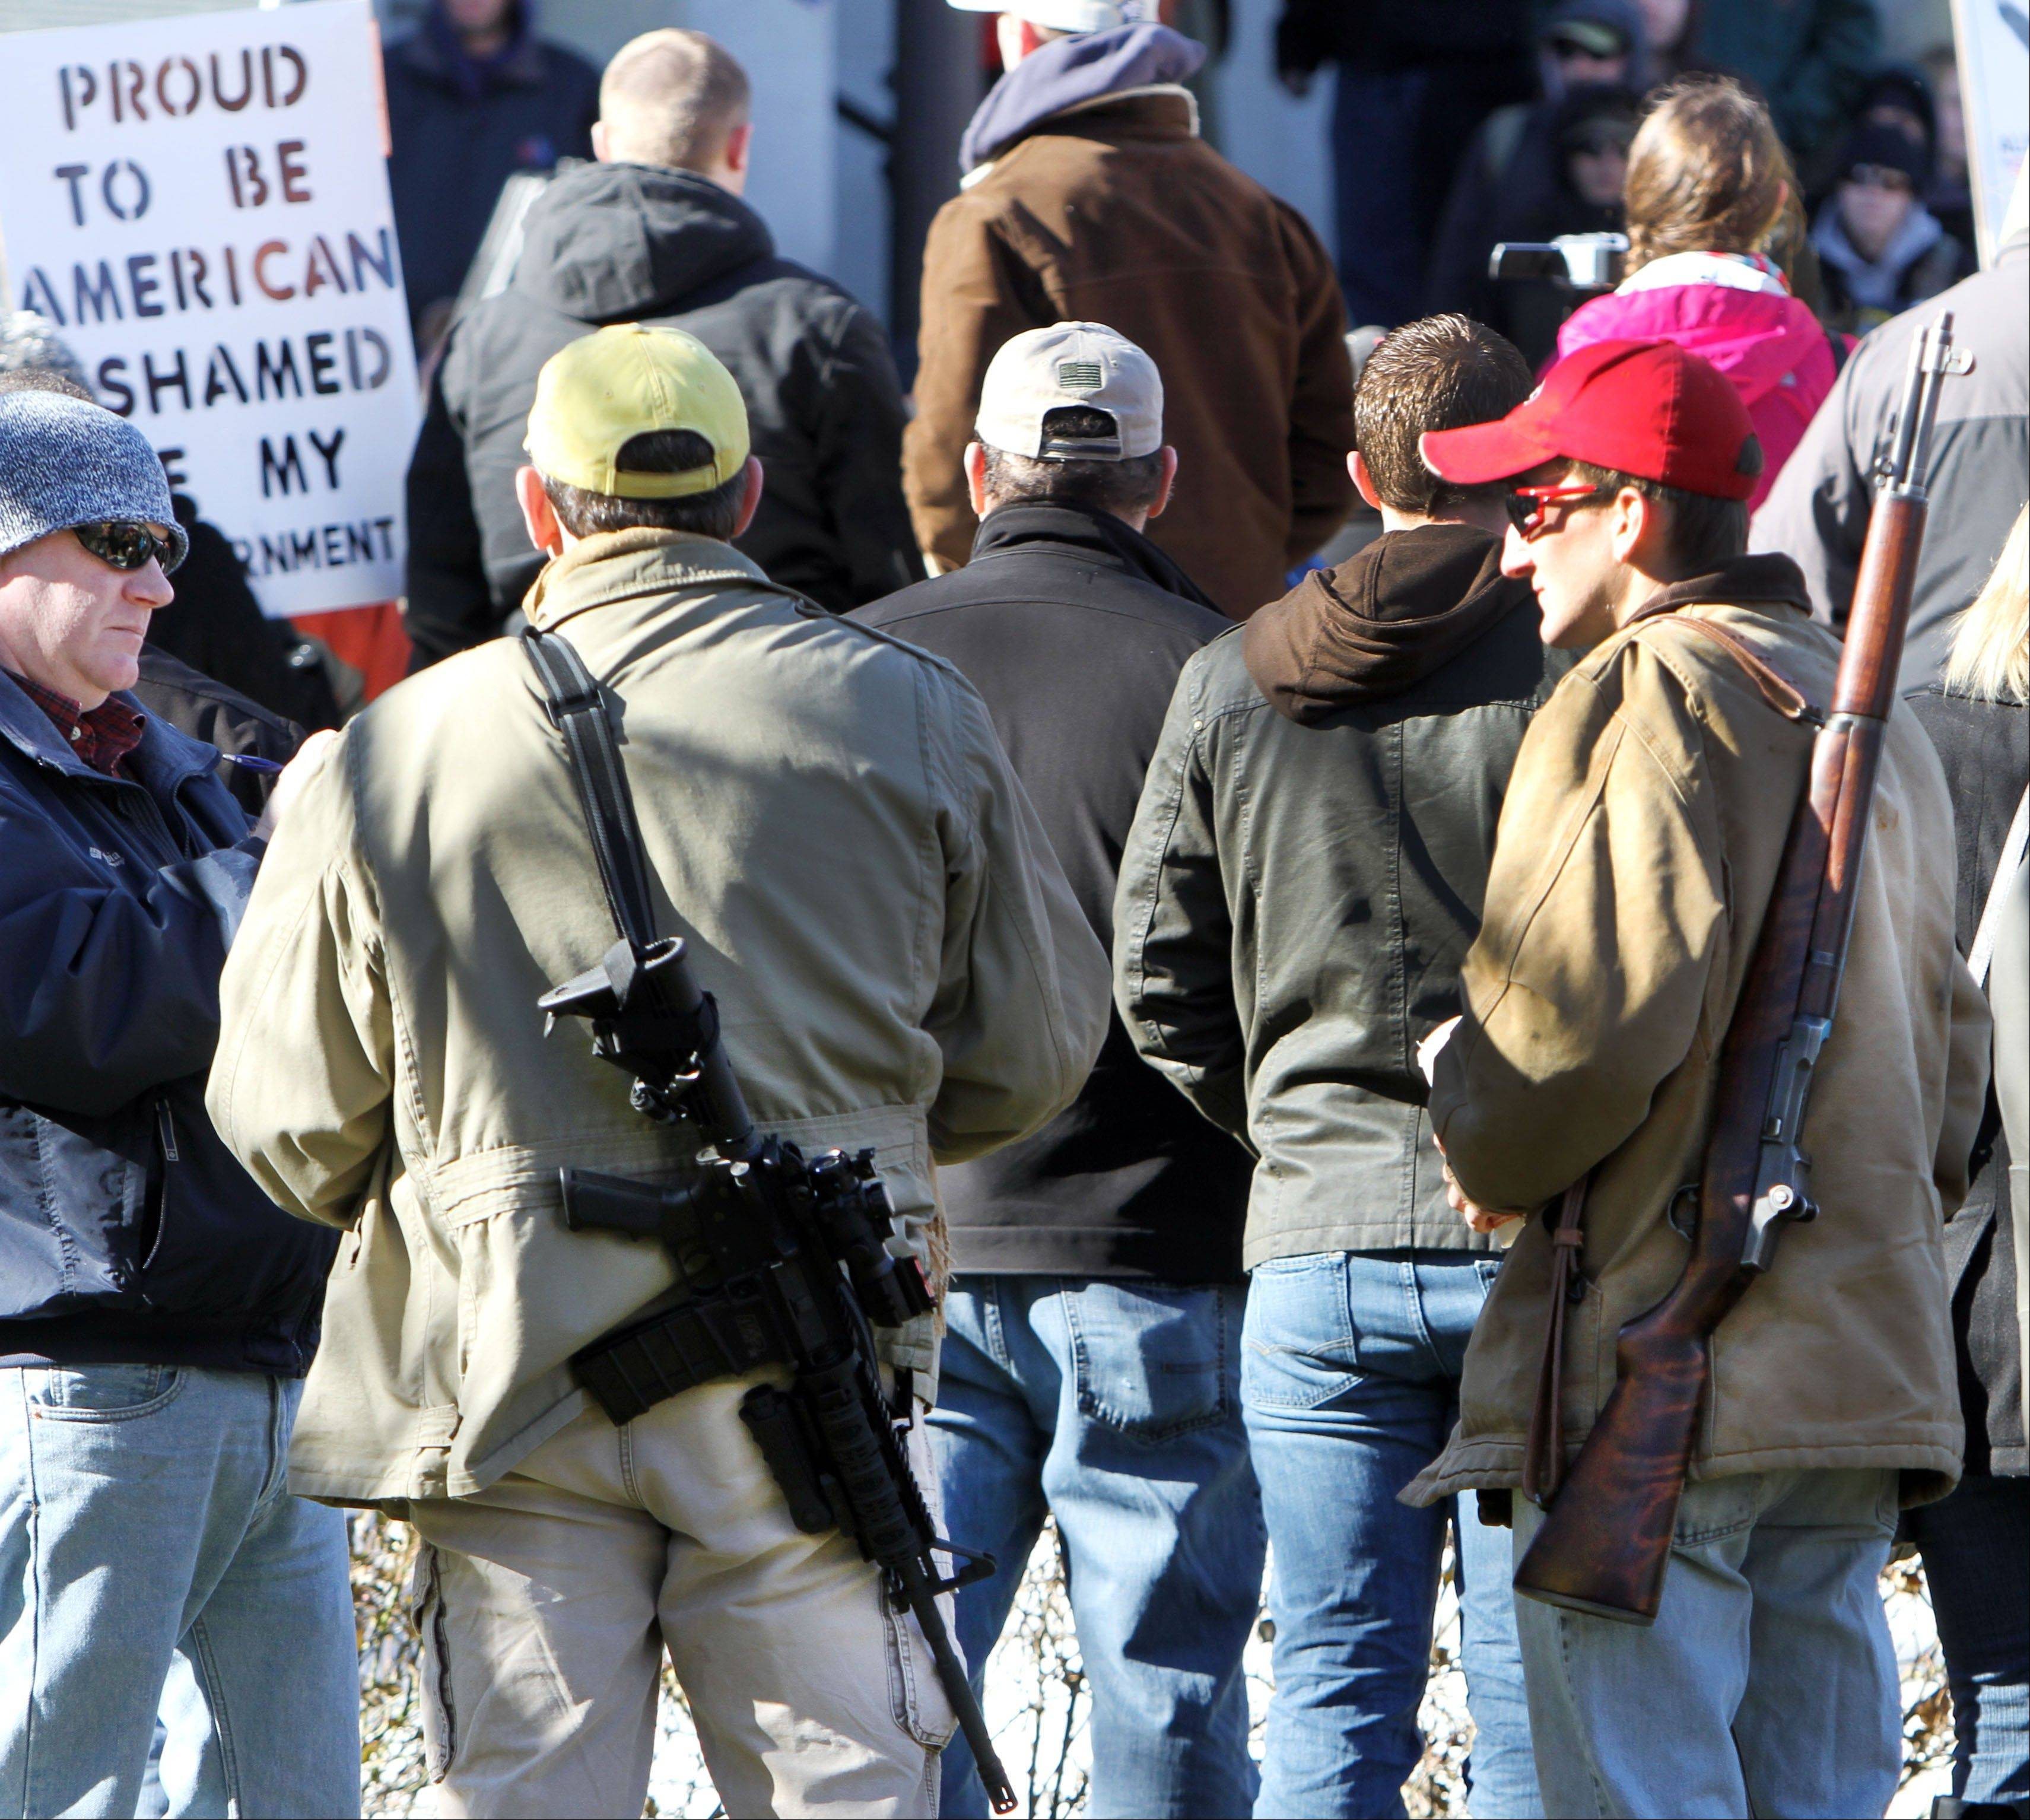 Gun owners rally to promote the right to bear arms in front of the Statehouse in Concord, N.H., Thursday. Speakers criticized Democrats in Washington for favoring new gun control laws following the Connecticut school shooting that left 26 dead last month.